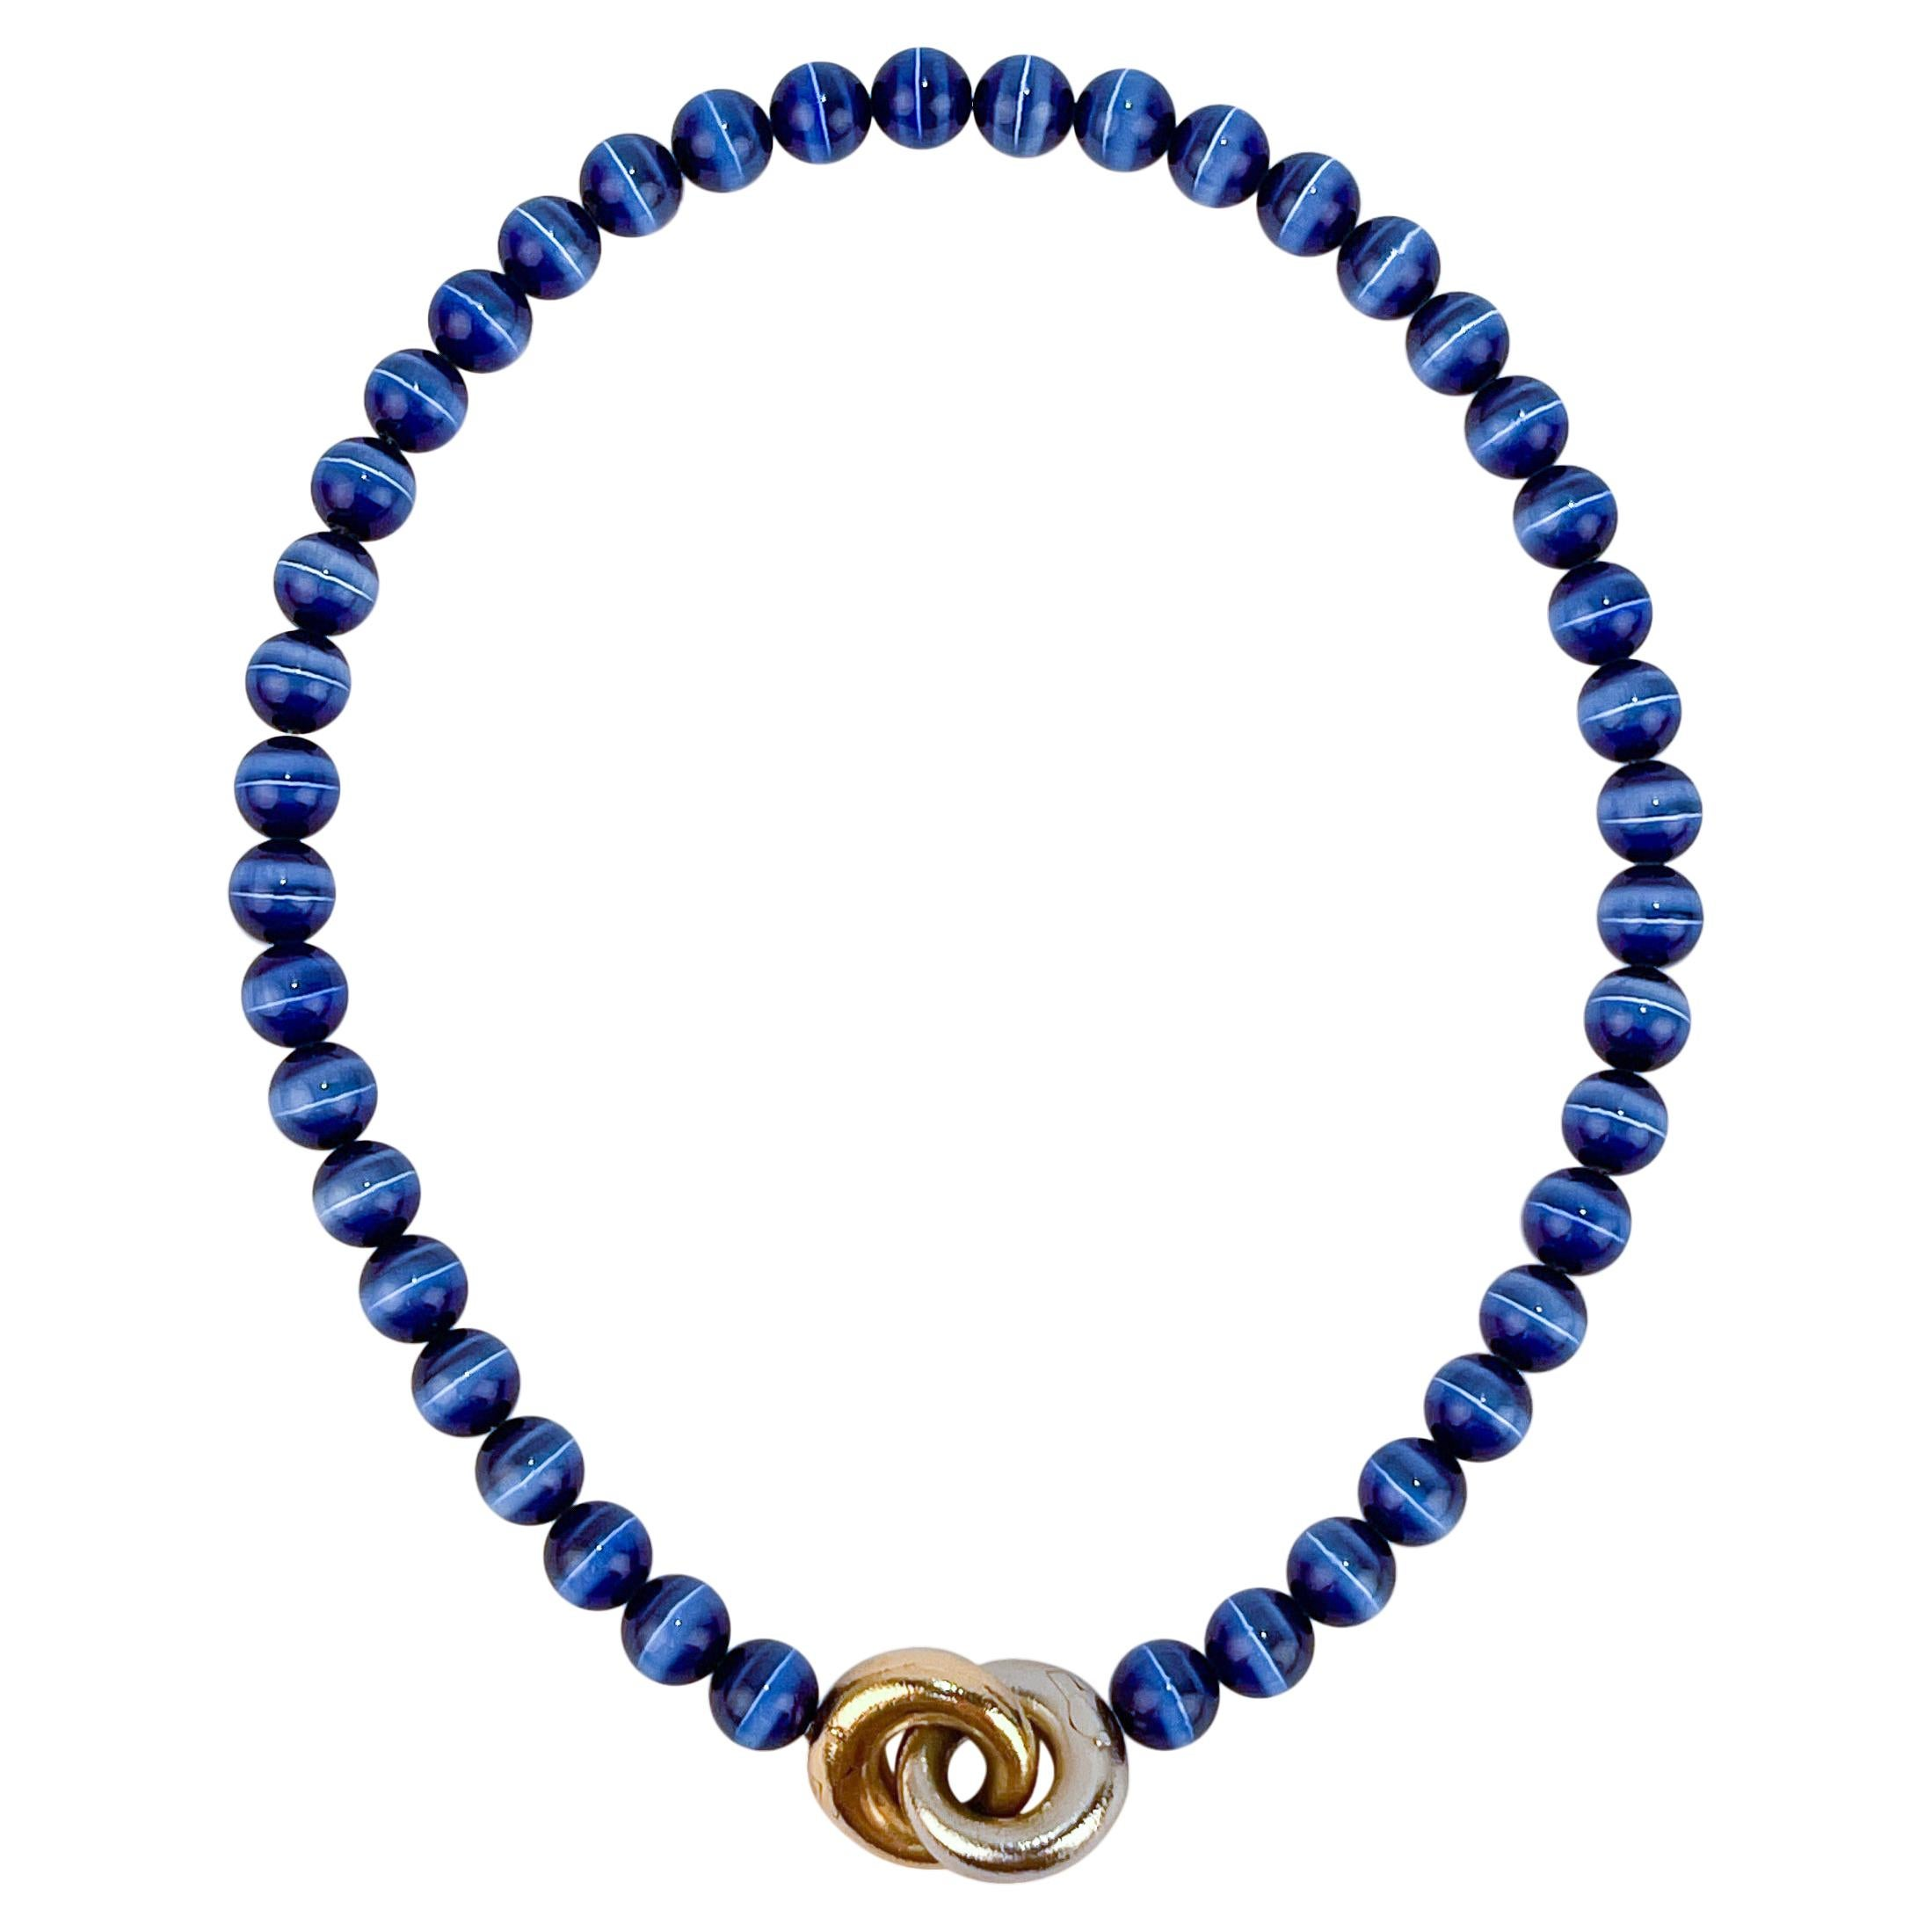 Ole Lynggaard 14k Gold & Blue Tiger's Eye Beaded Collier or Choker Necklace